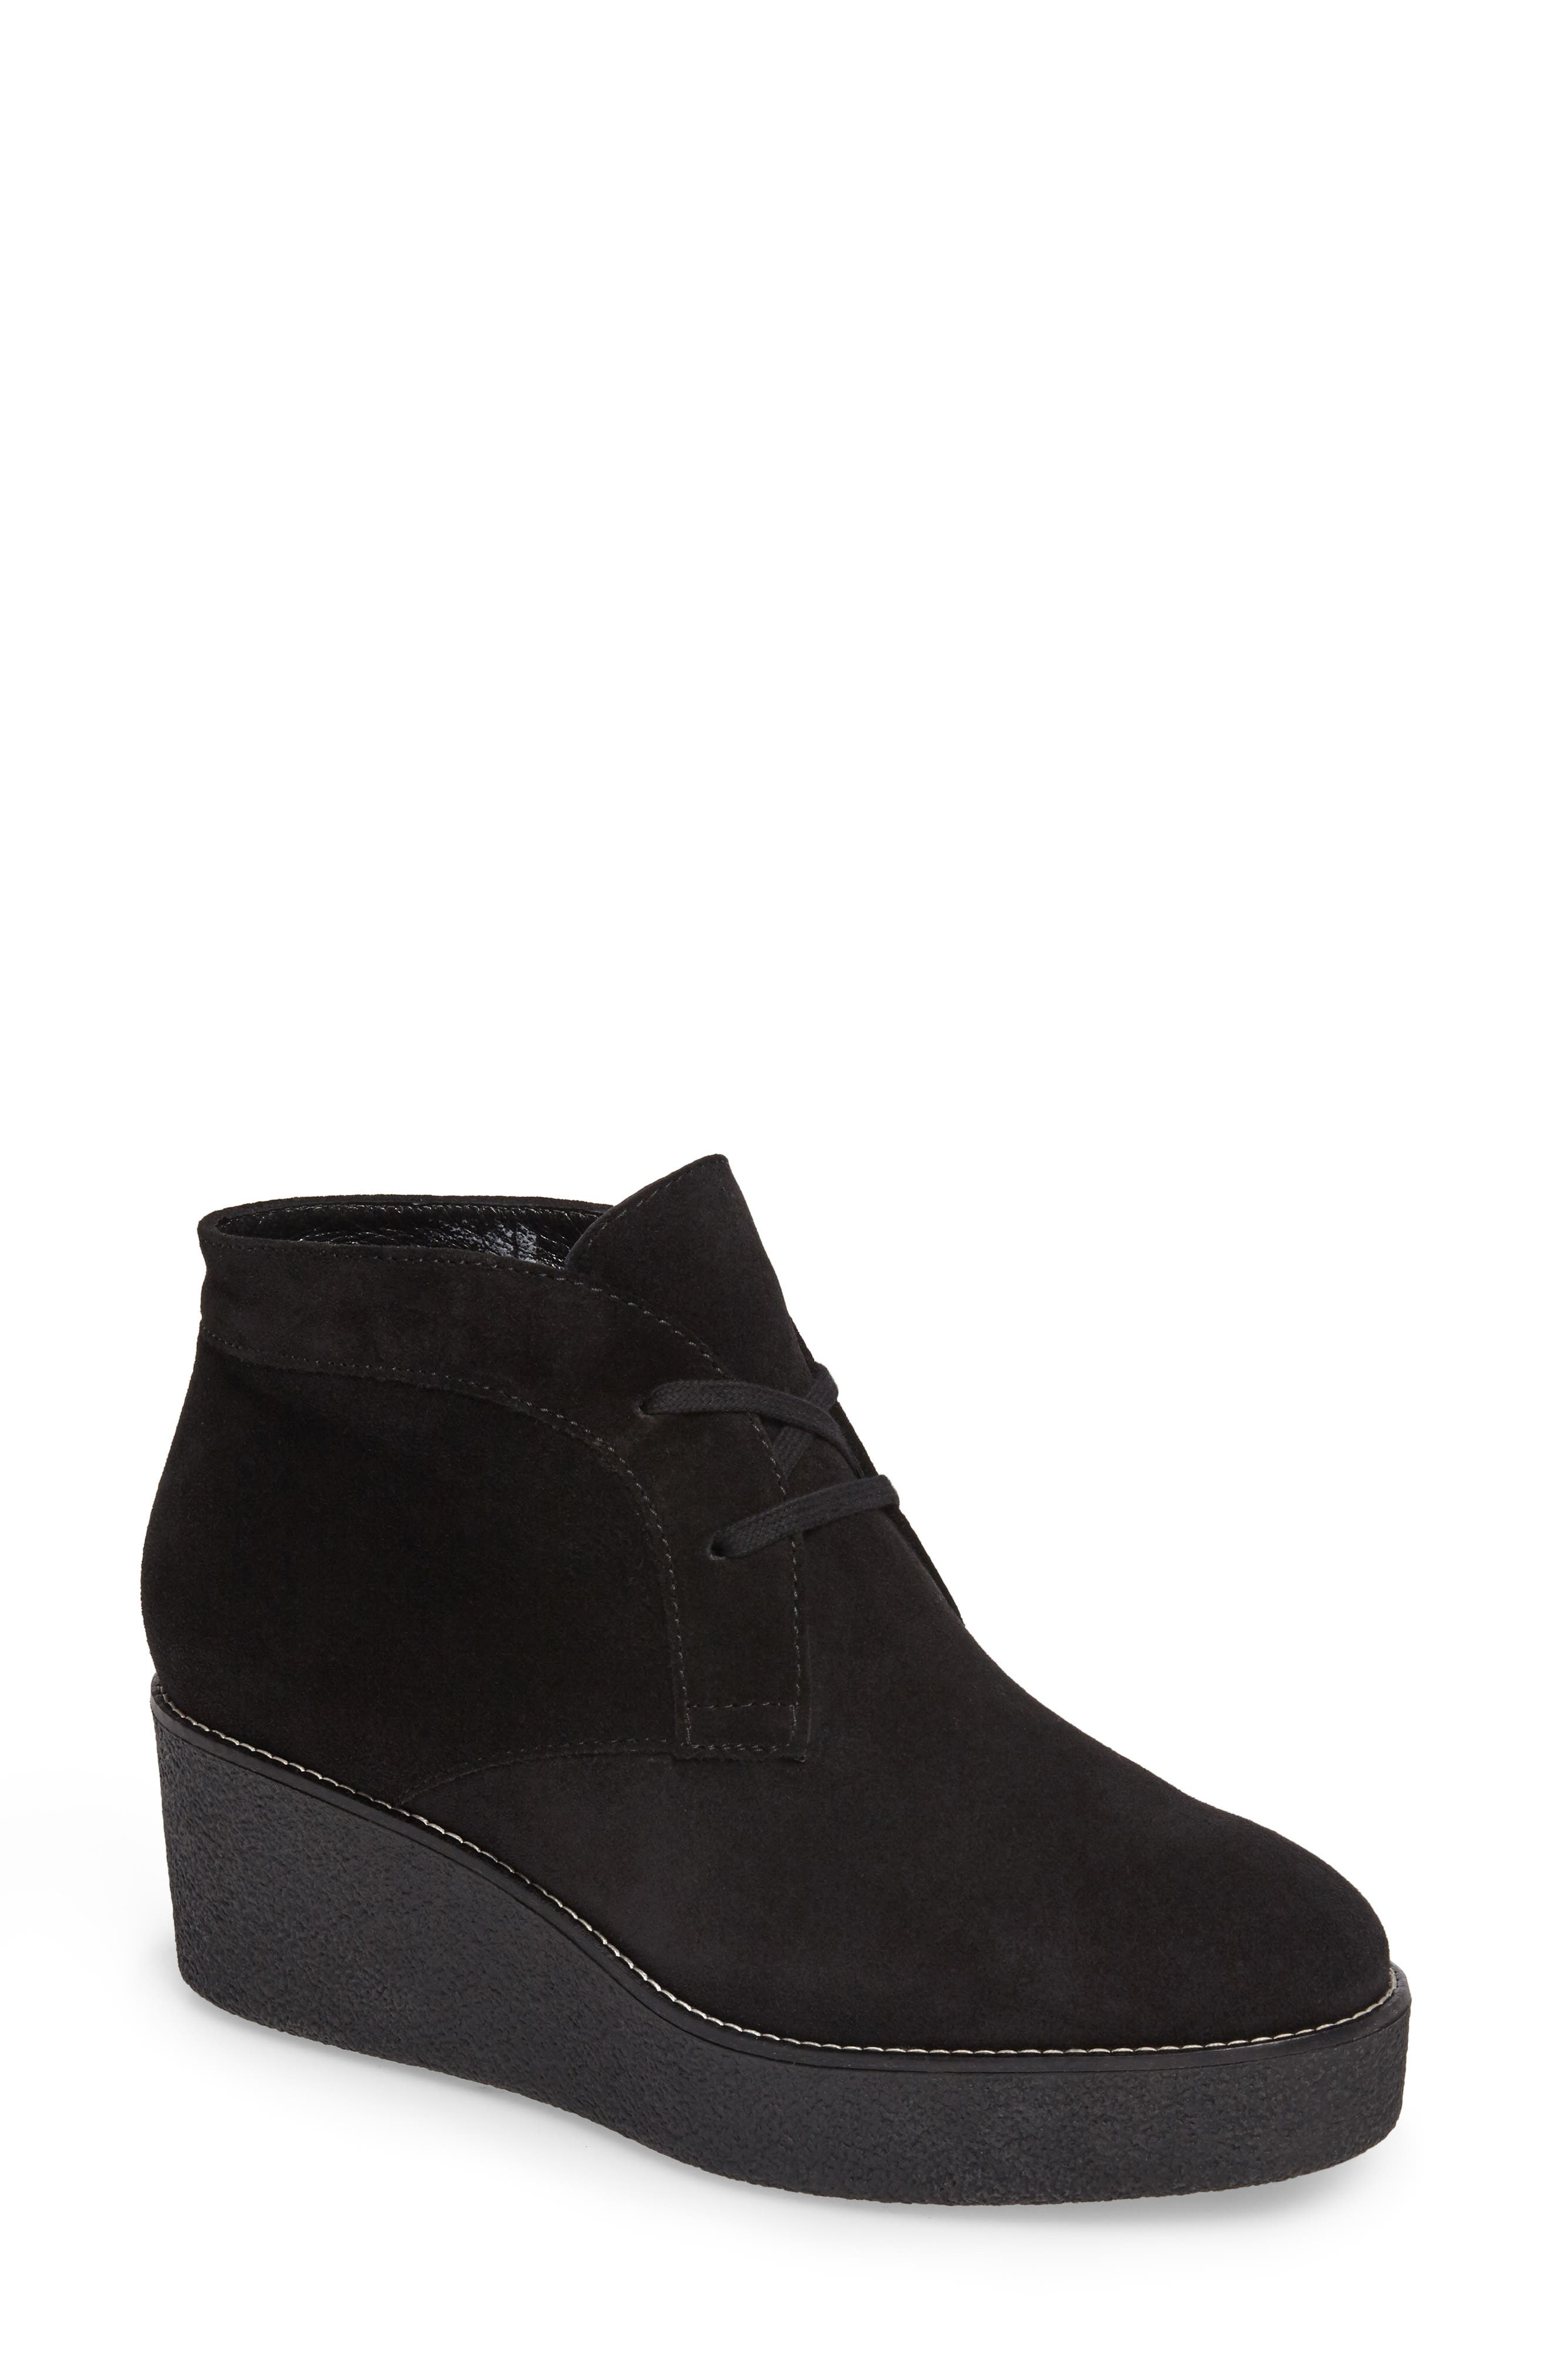 Valeriee Wedge Bootie,                             Main thumbnail 1, color,                             001